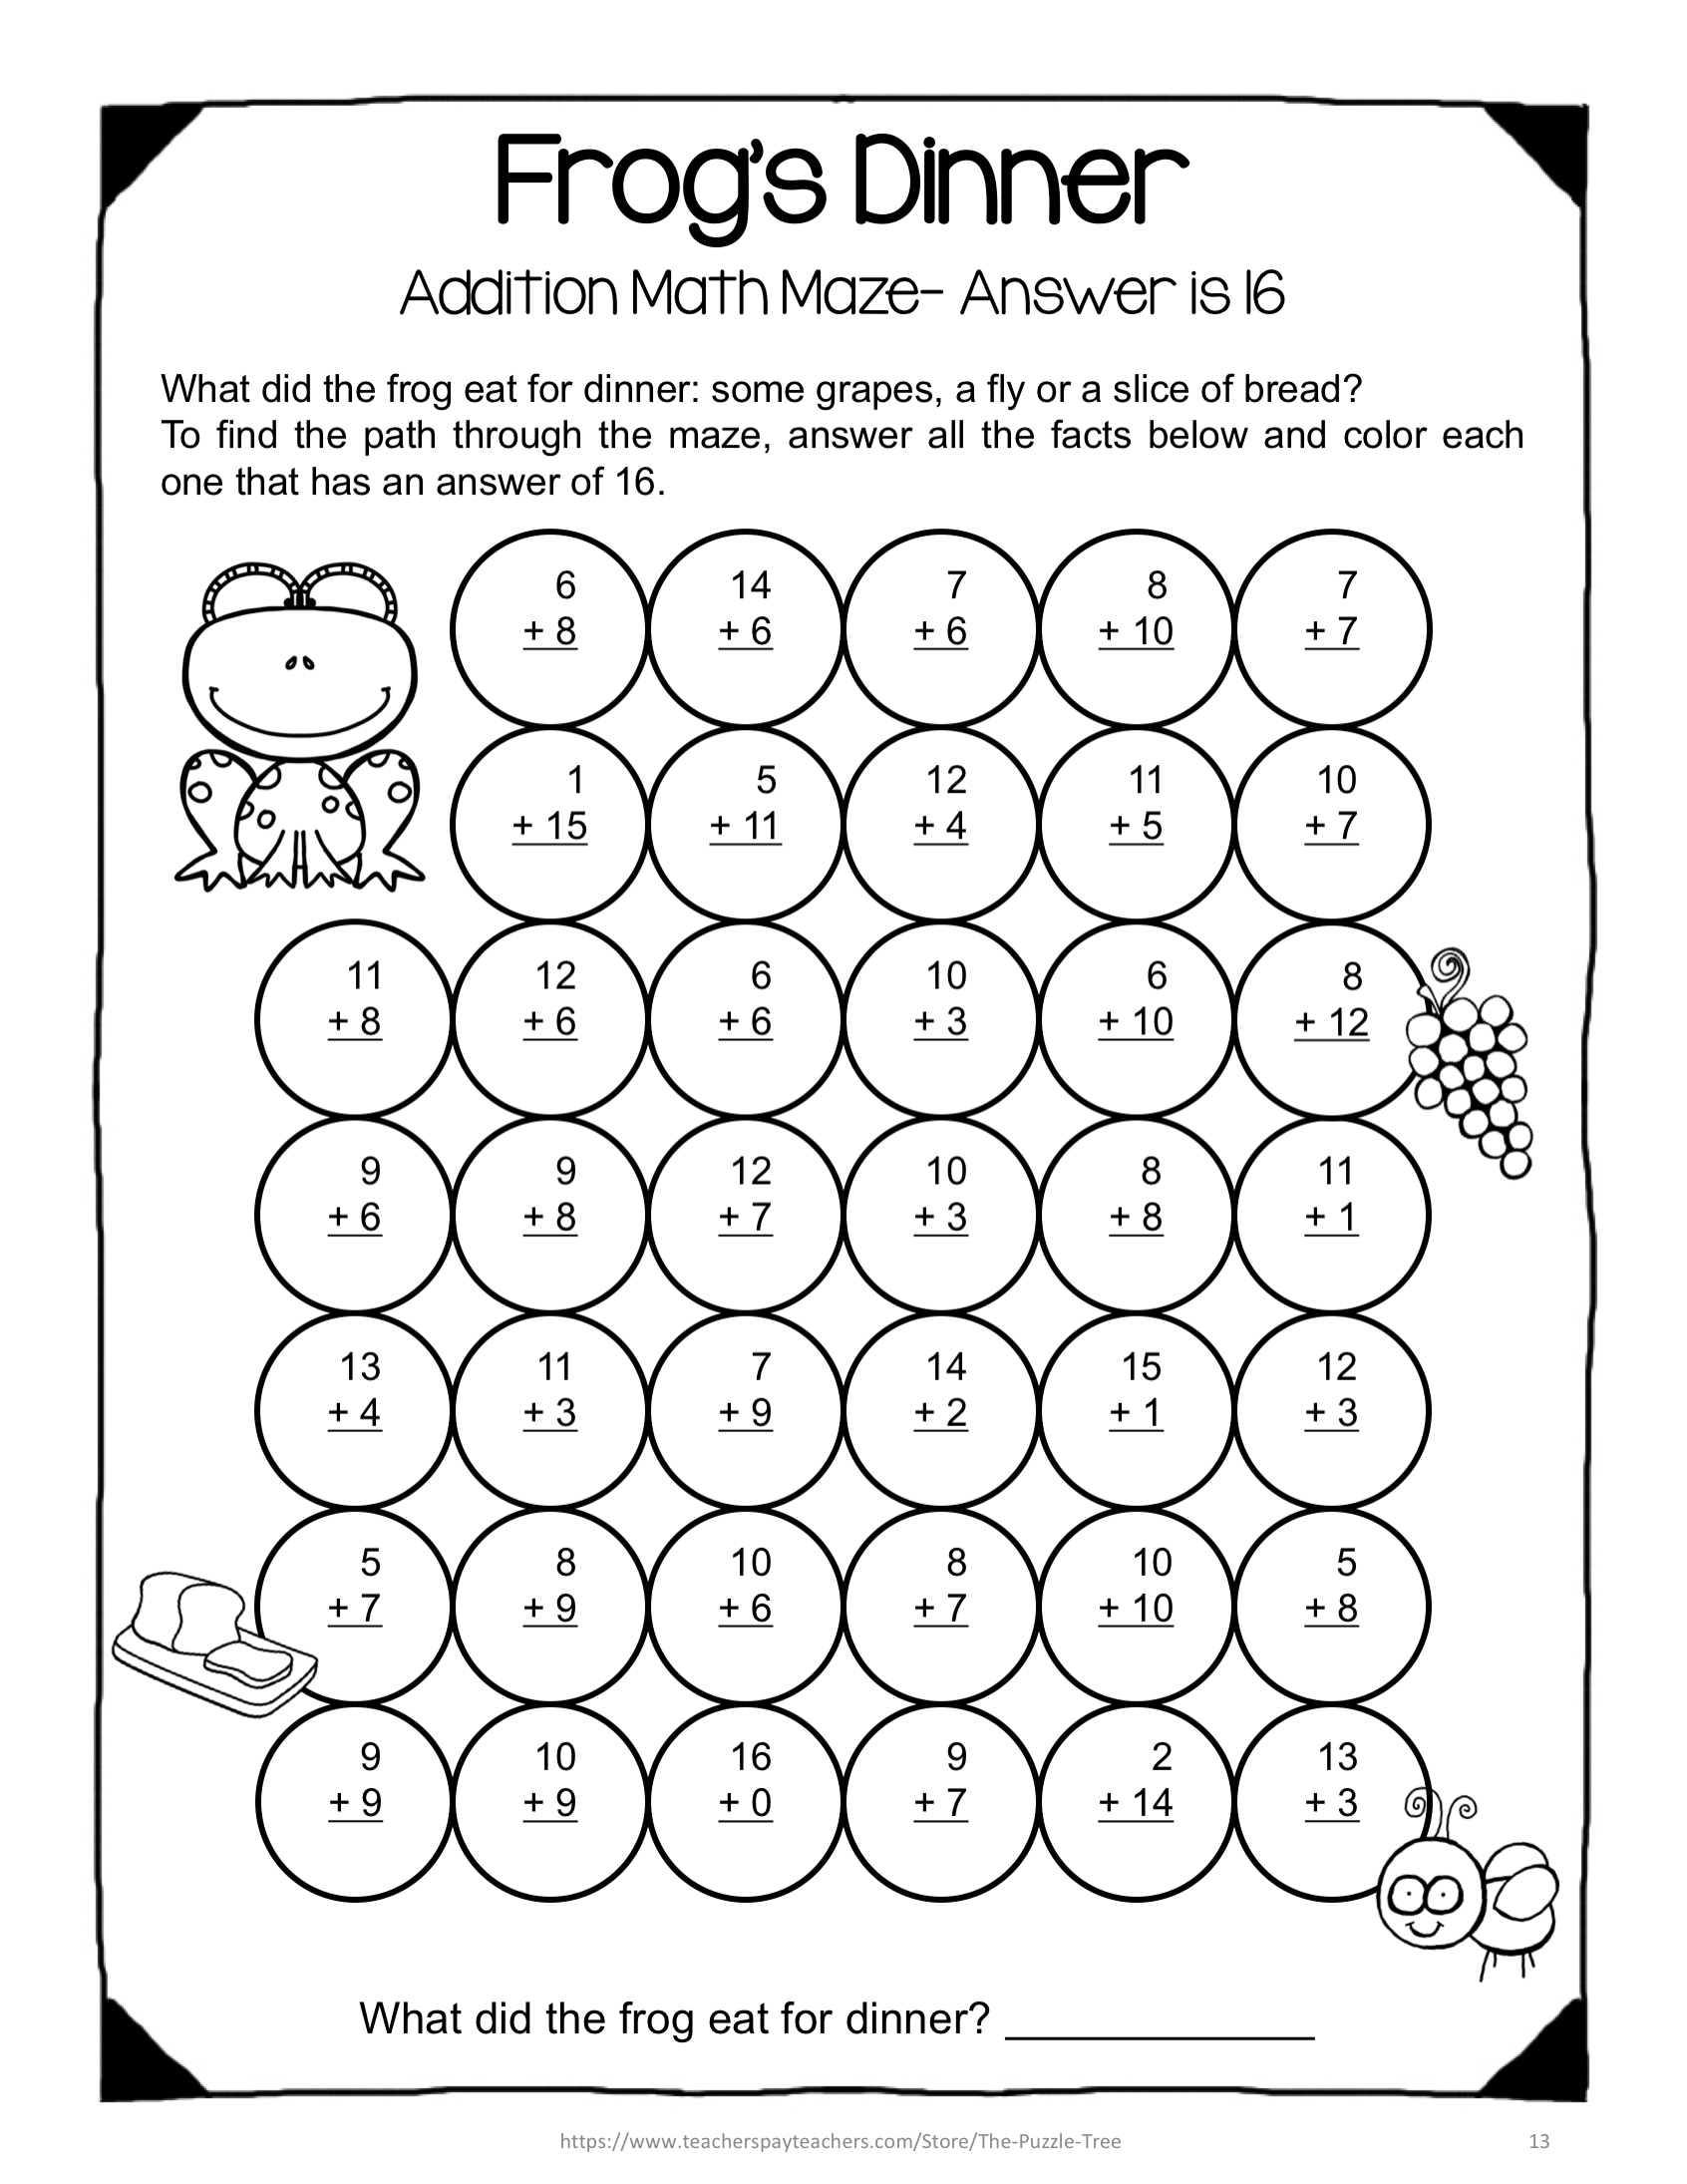 Have Fun With Addition In The Classroom With These Addition Math Mazes They Require No Prep Just Print T Math Maze Math Fact Fluency Free Addition Worksheets